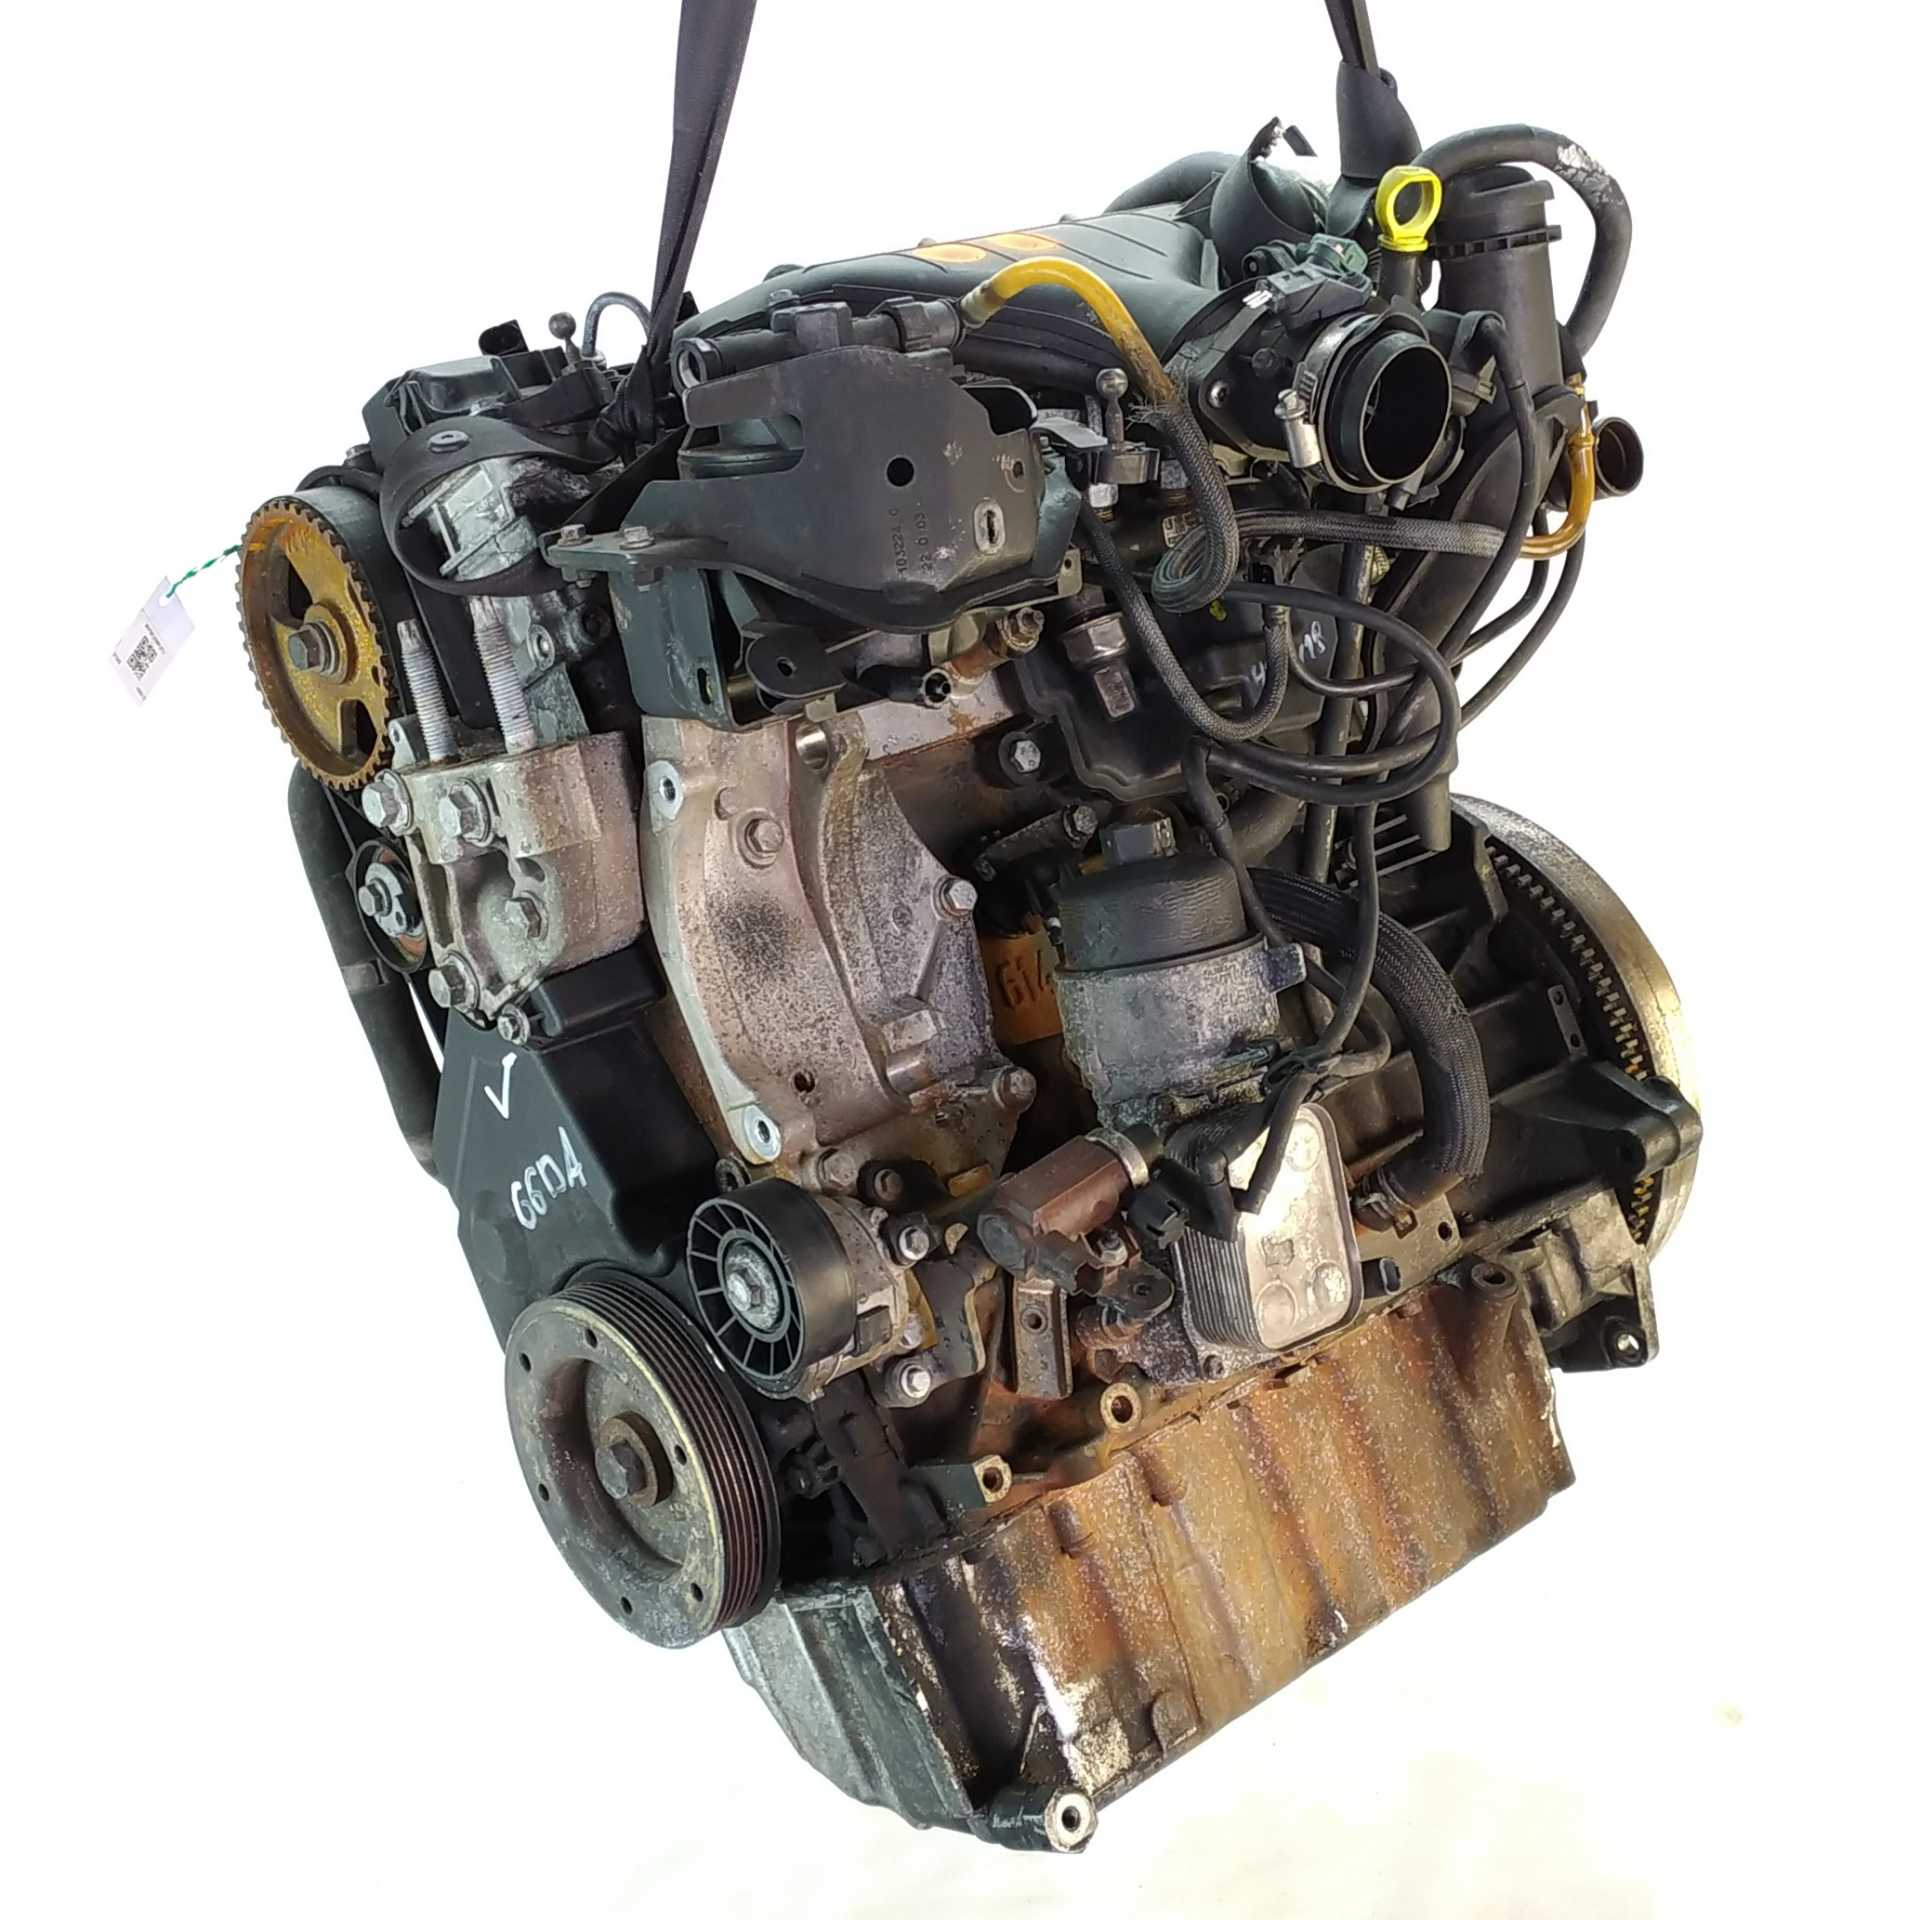 MOTOR COMPLETO FORD C-MAX 2.0 TDCi (100 KW / 136 CV) (02.2007 - 09.2010)